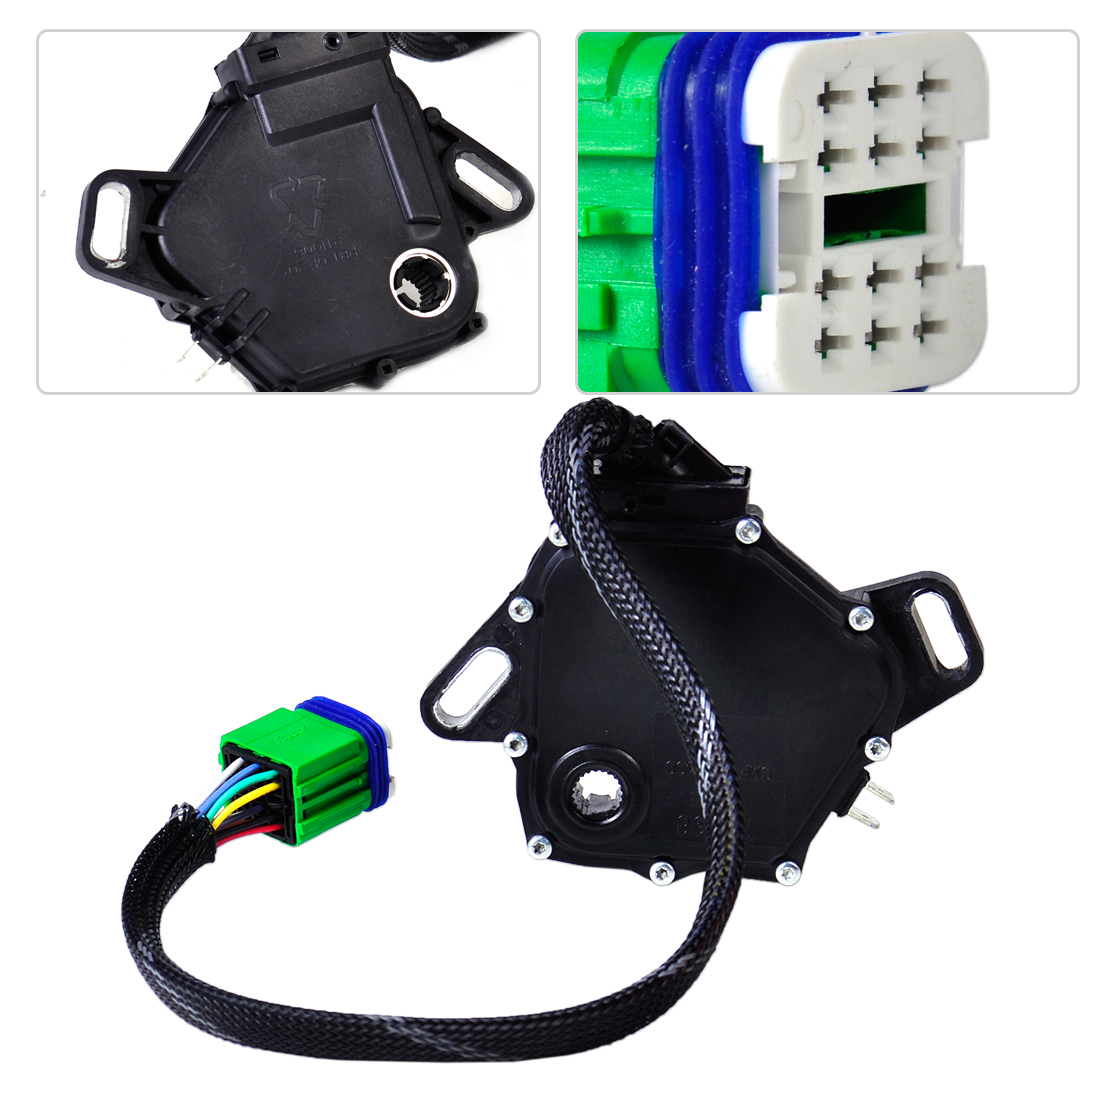 Multifunction transmission neutral switch 252927 252927 fits multifunction transmission neutral switch 252927 252927 fits peugeot 207 307 728360632470 ebay publicscrutiny Images